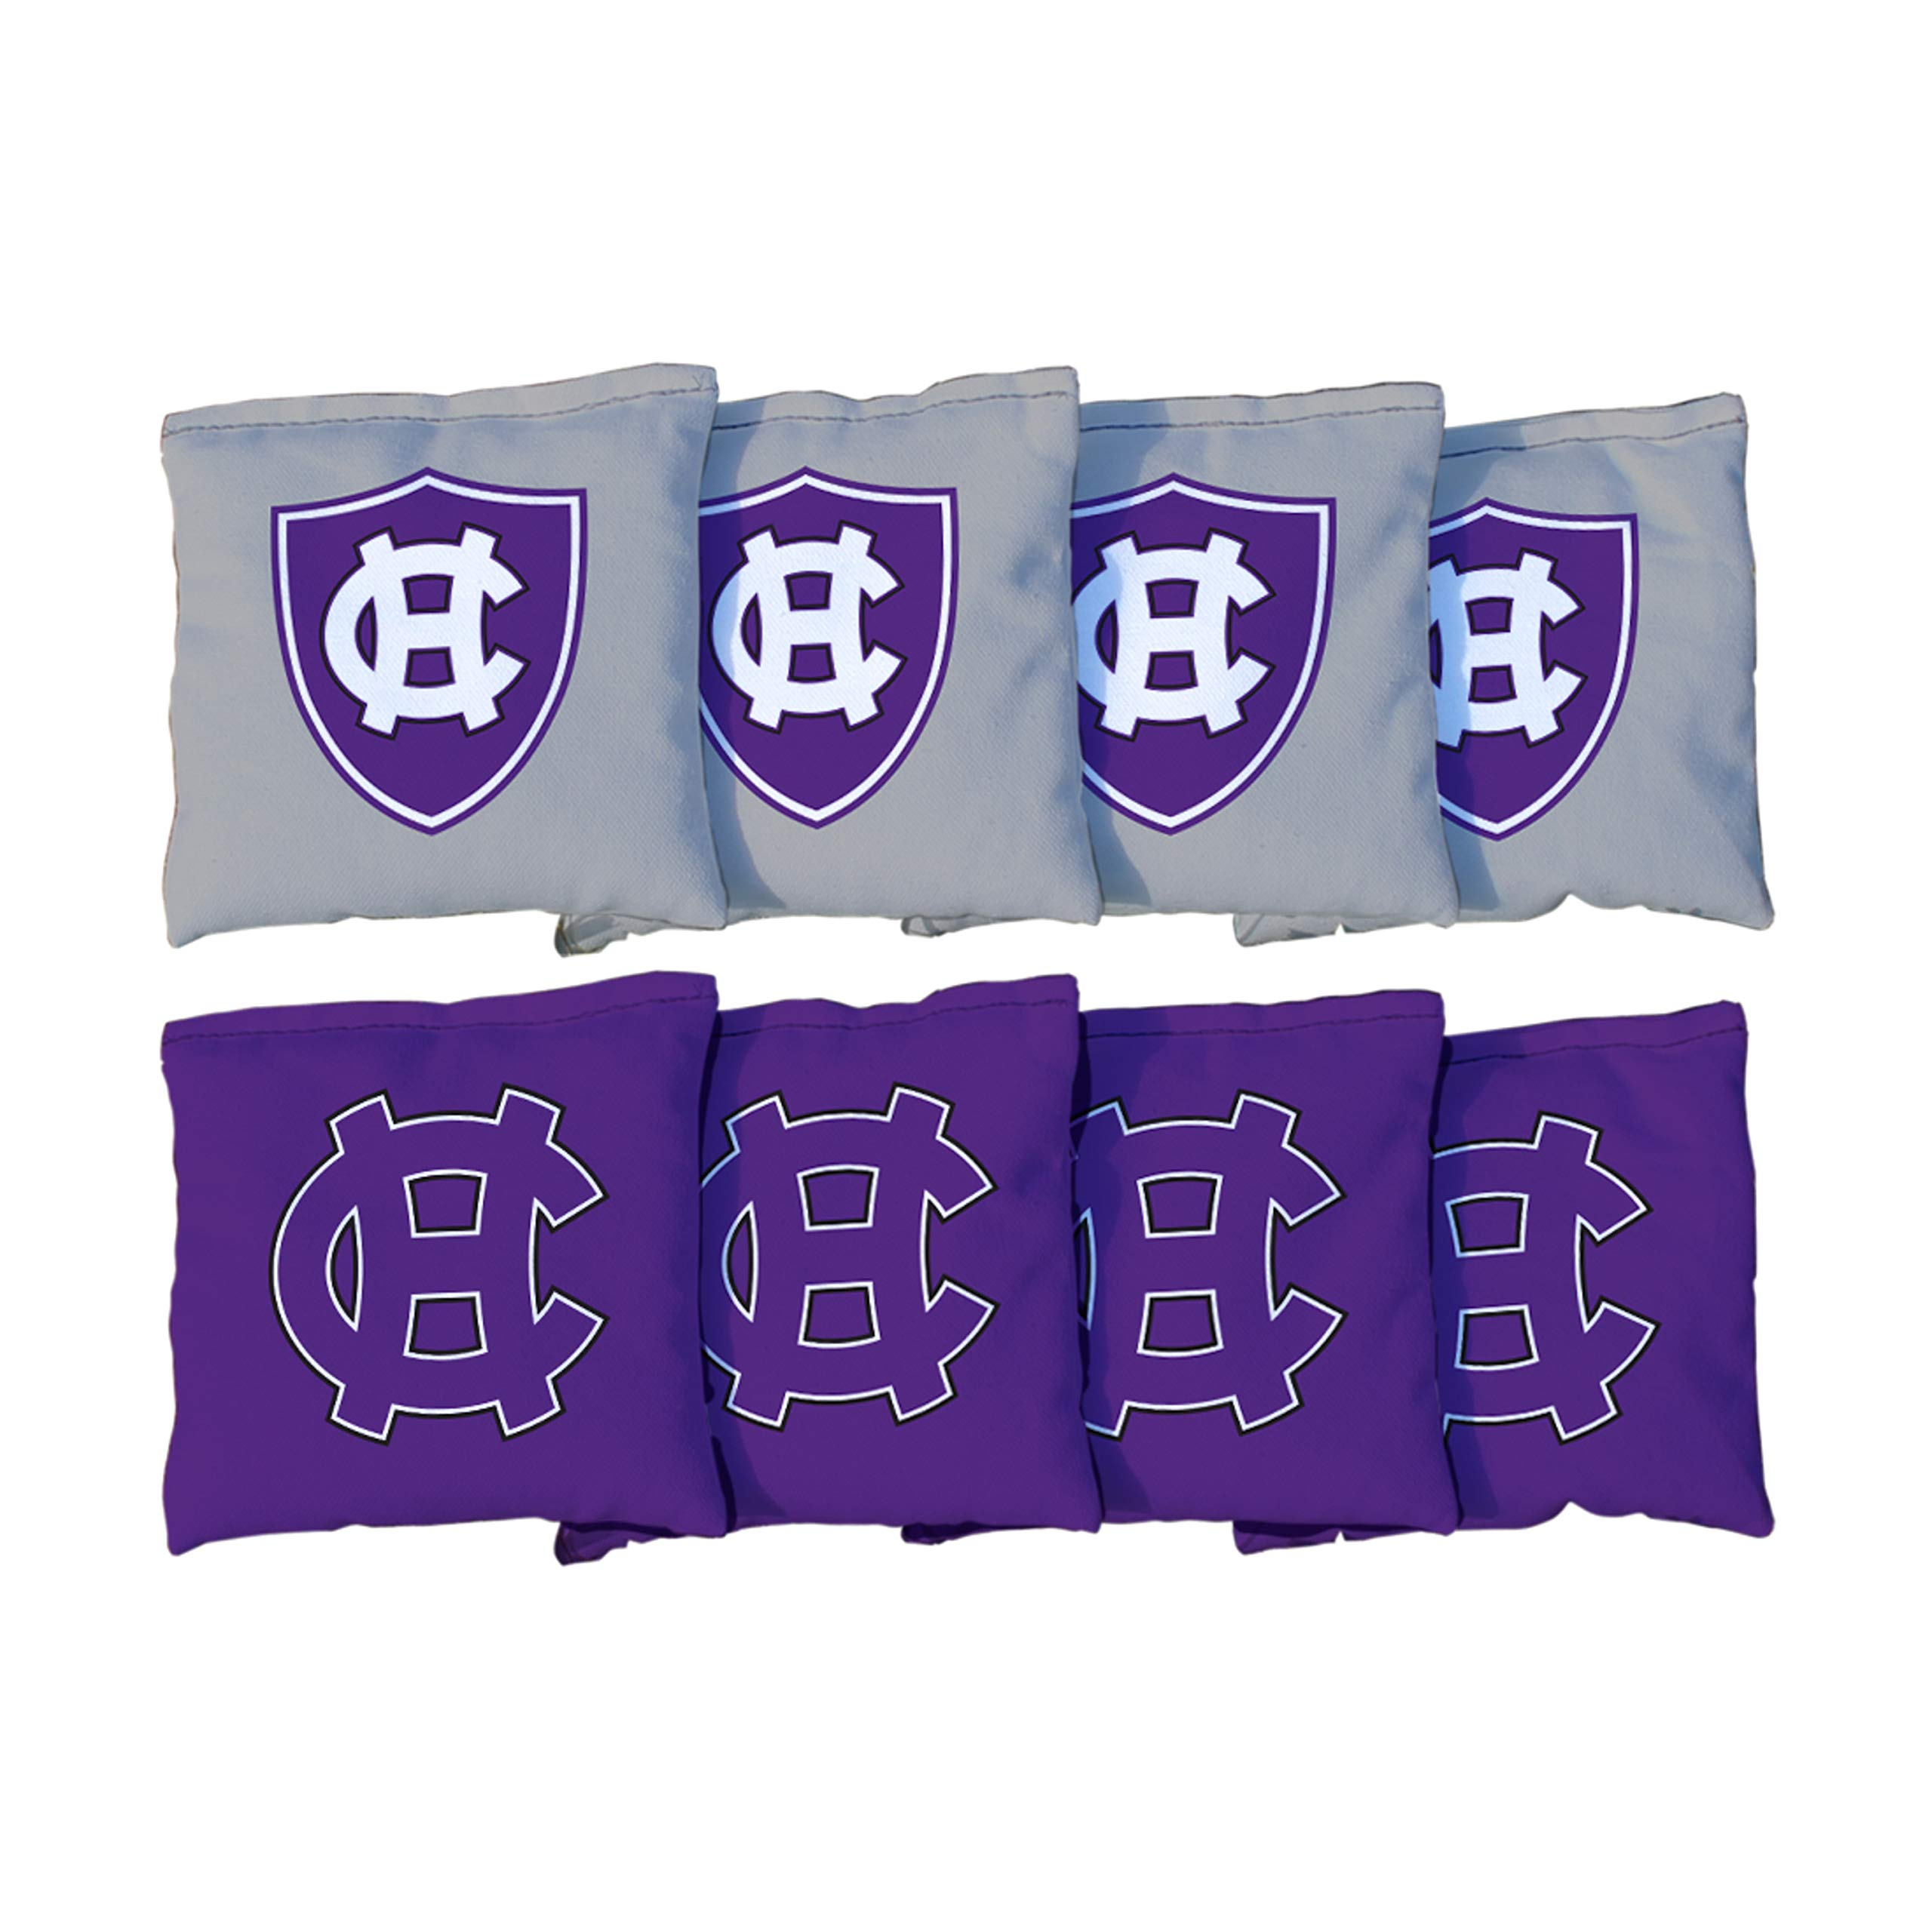 Victory Tailgate NCAA Regulation Cornhole Game Bag Set (8 Bags Included, Corn-Filled) - College of The Holy Cross Crusaders by Victory Tailgate (Image #1)